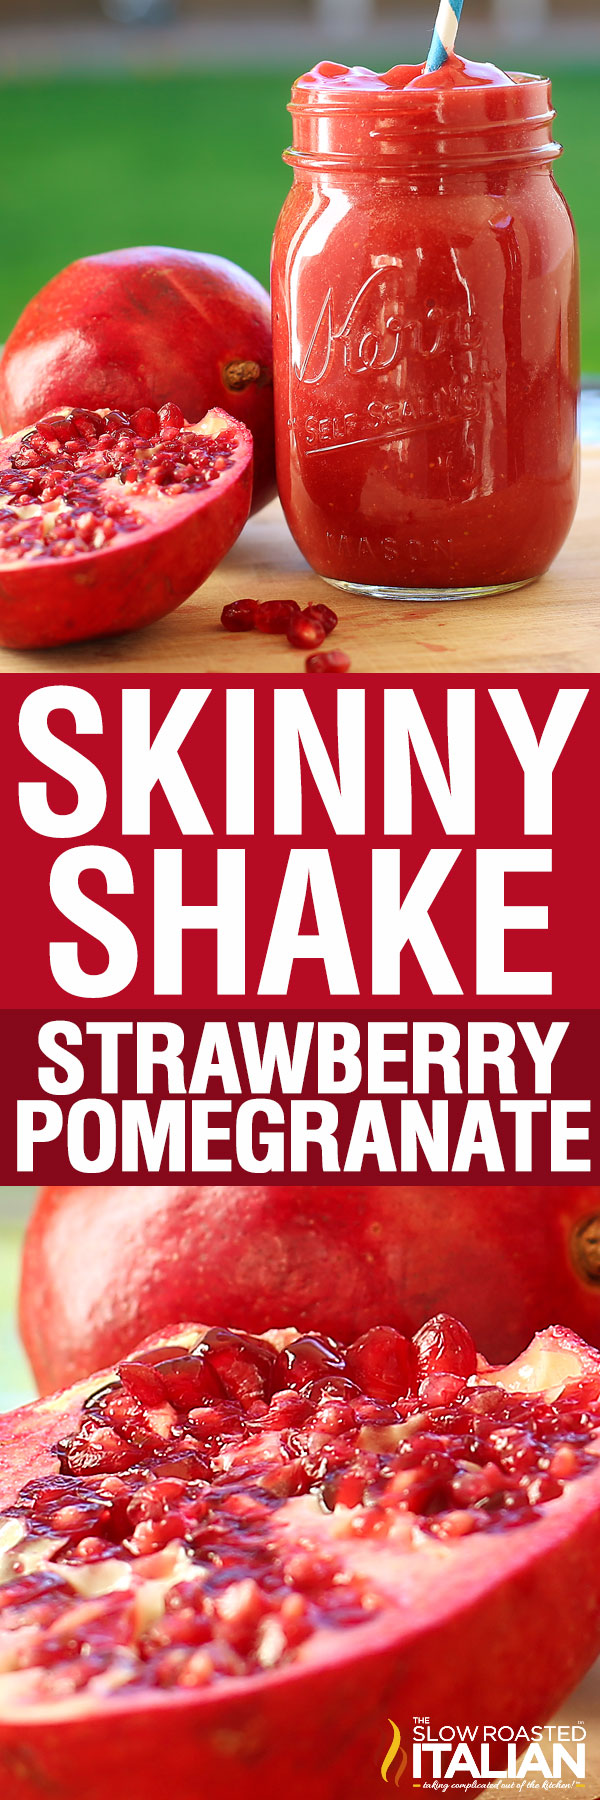 titled image for Pinterest shows a detoxifying drink called a Skinny Shake